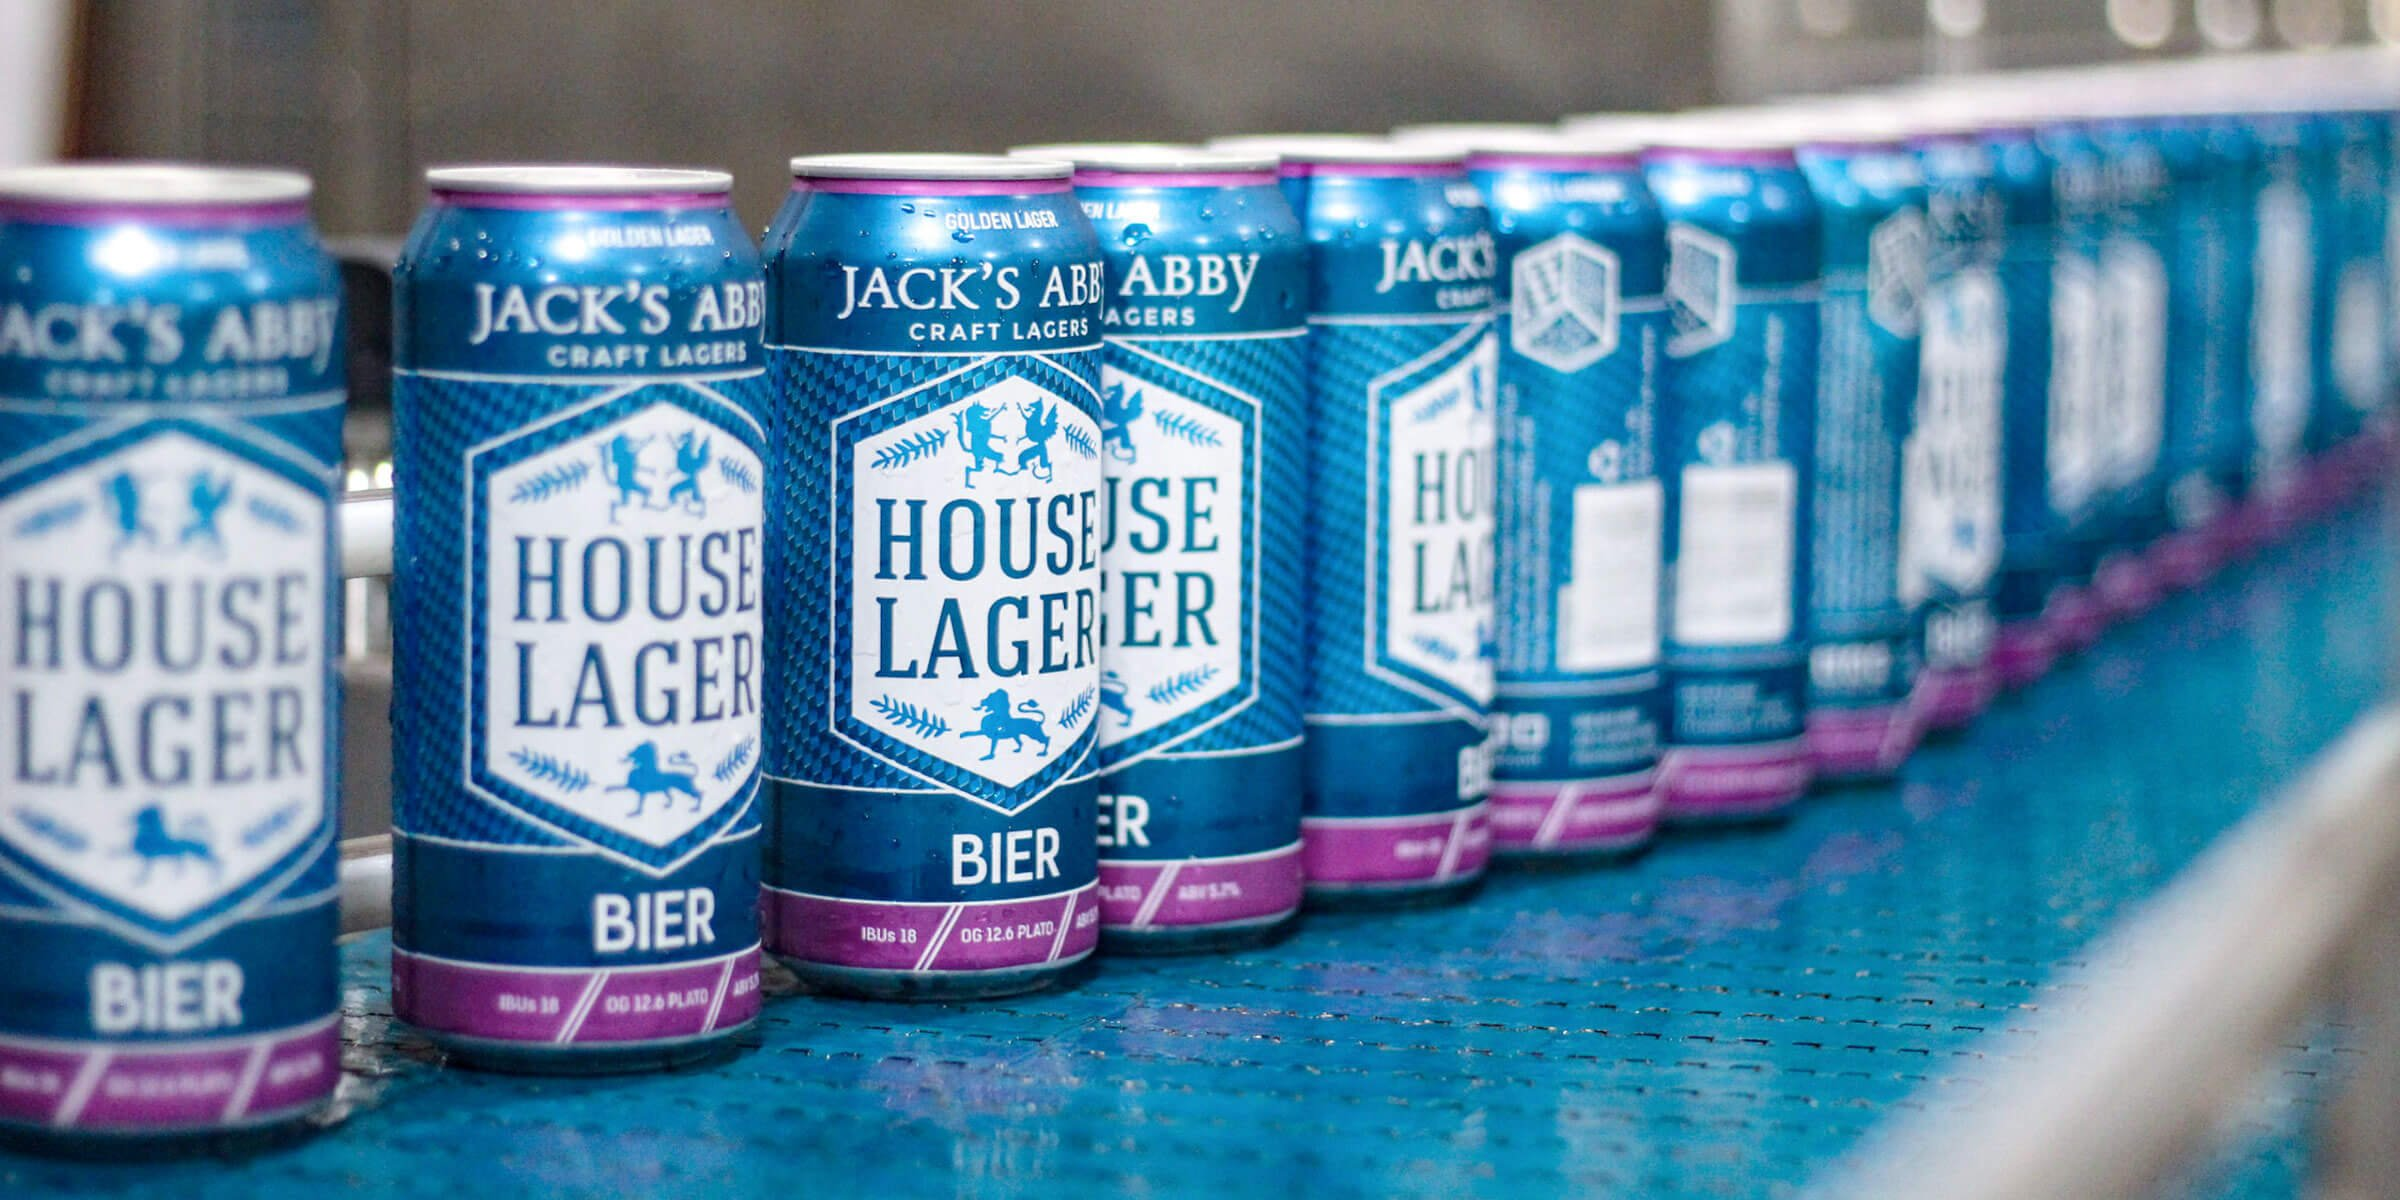 A row of 16 oz. cans of the House Lager Bier by Jack's Abby Craft Lagers